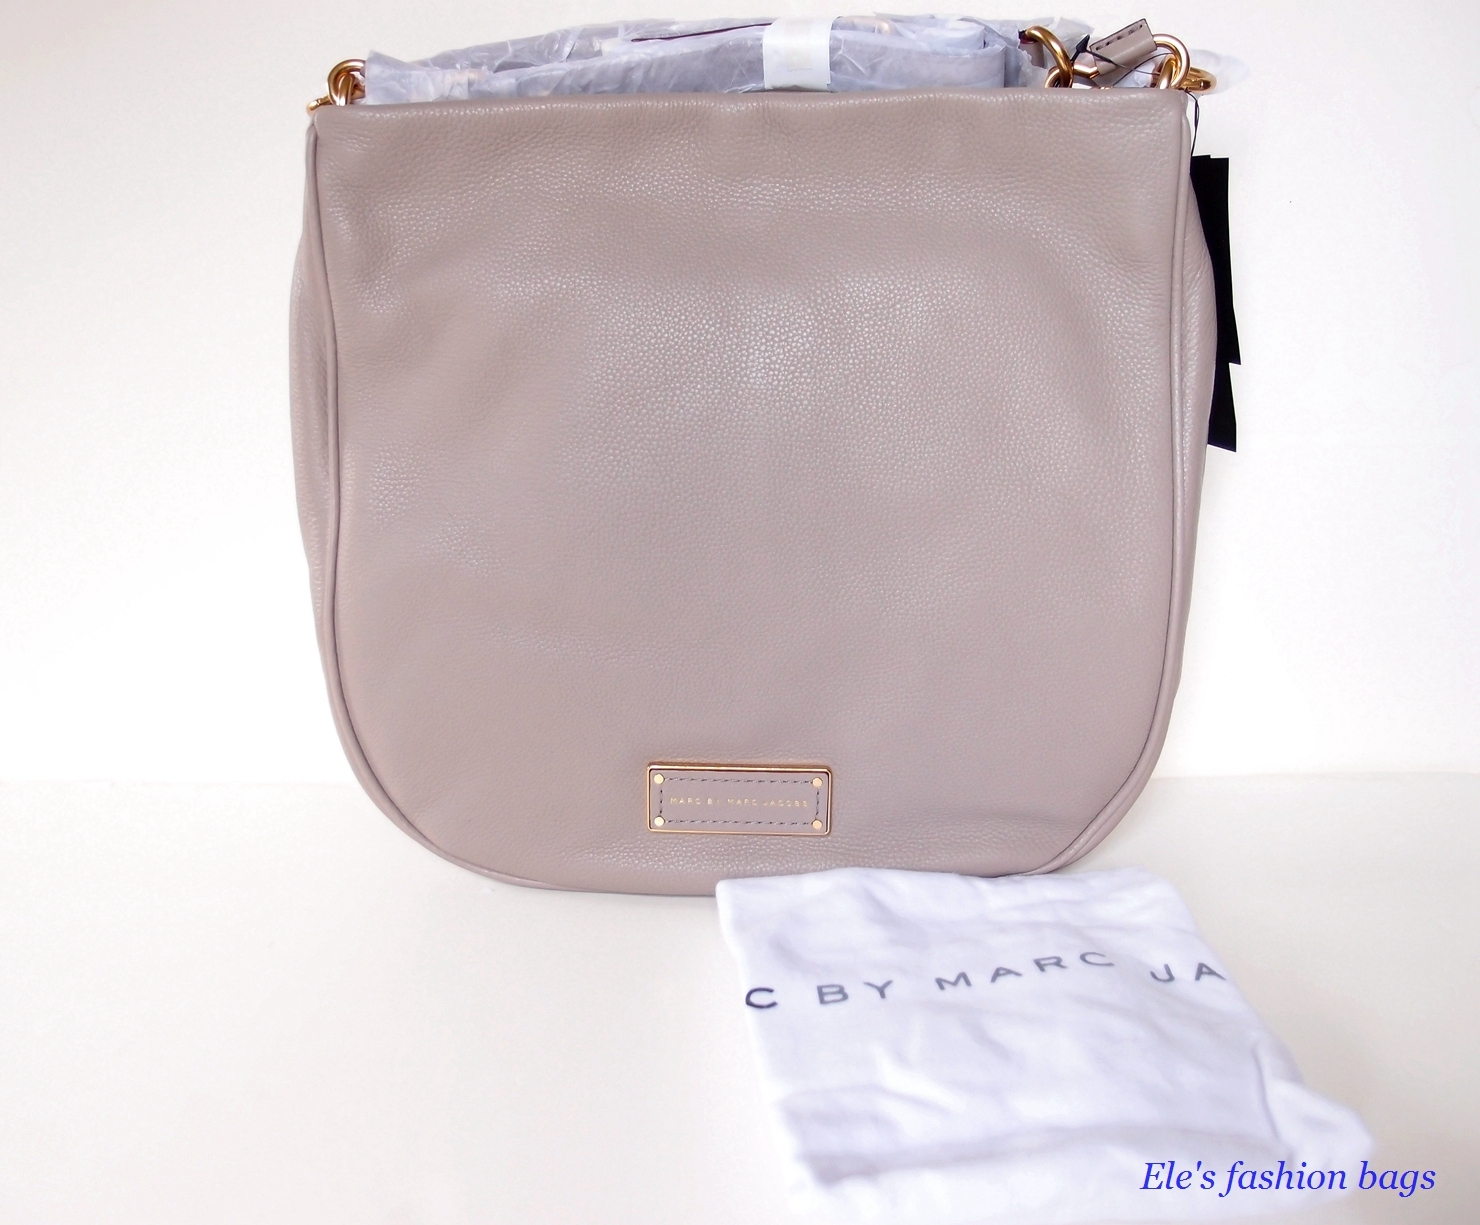 NWT MARC by MARC JACOBS Too Hot to Handle Hobo/Shoulder Bag - Cement/GOLD -$438